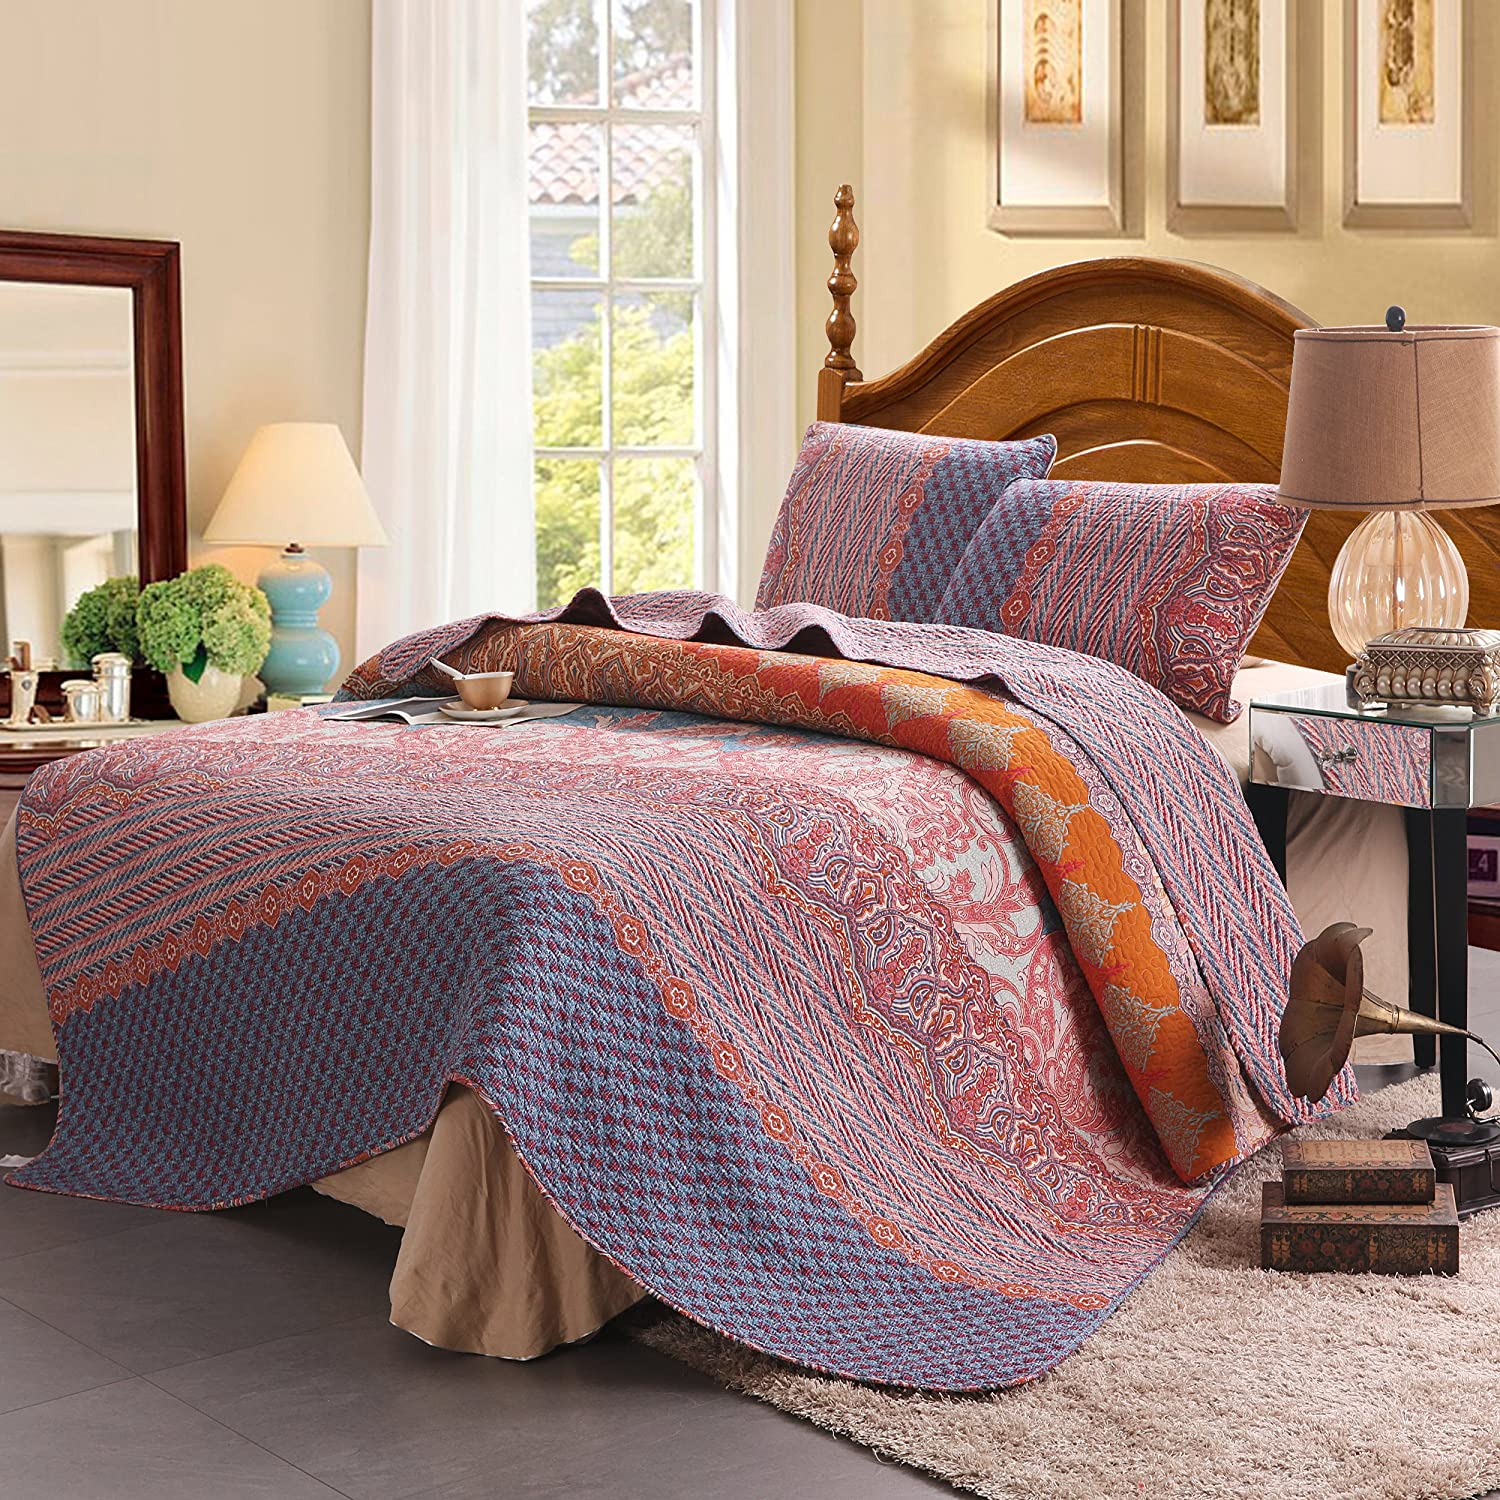 100% Cotton 3-Piece Chic Boho Quilt Set Reversible& Decorative - Full/Queen Size by Exclusivo Mezcla SYNCHKG115836